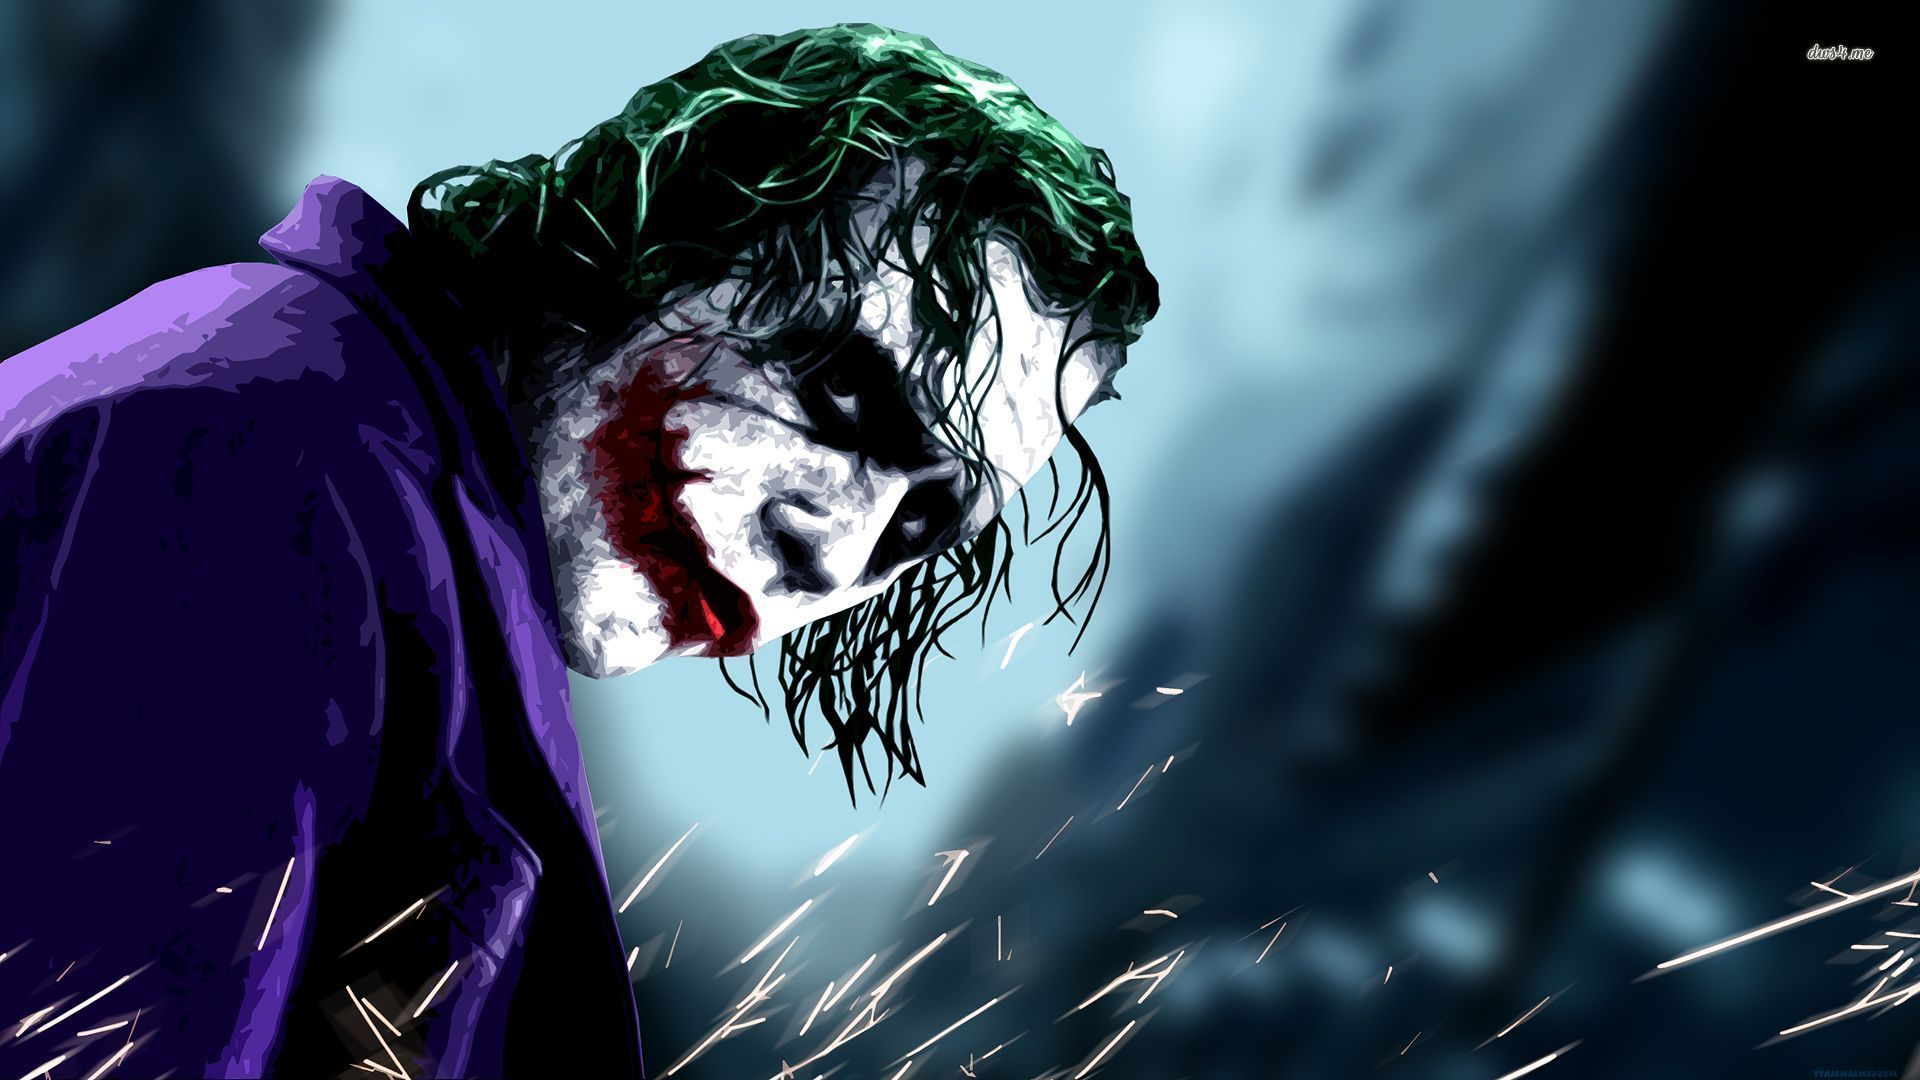 Joker Hd Wallpapers 1080p Joker Joker Hd Wallpaper